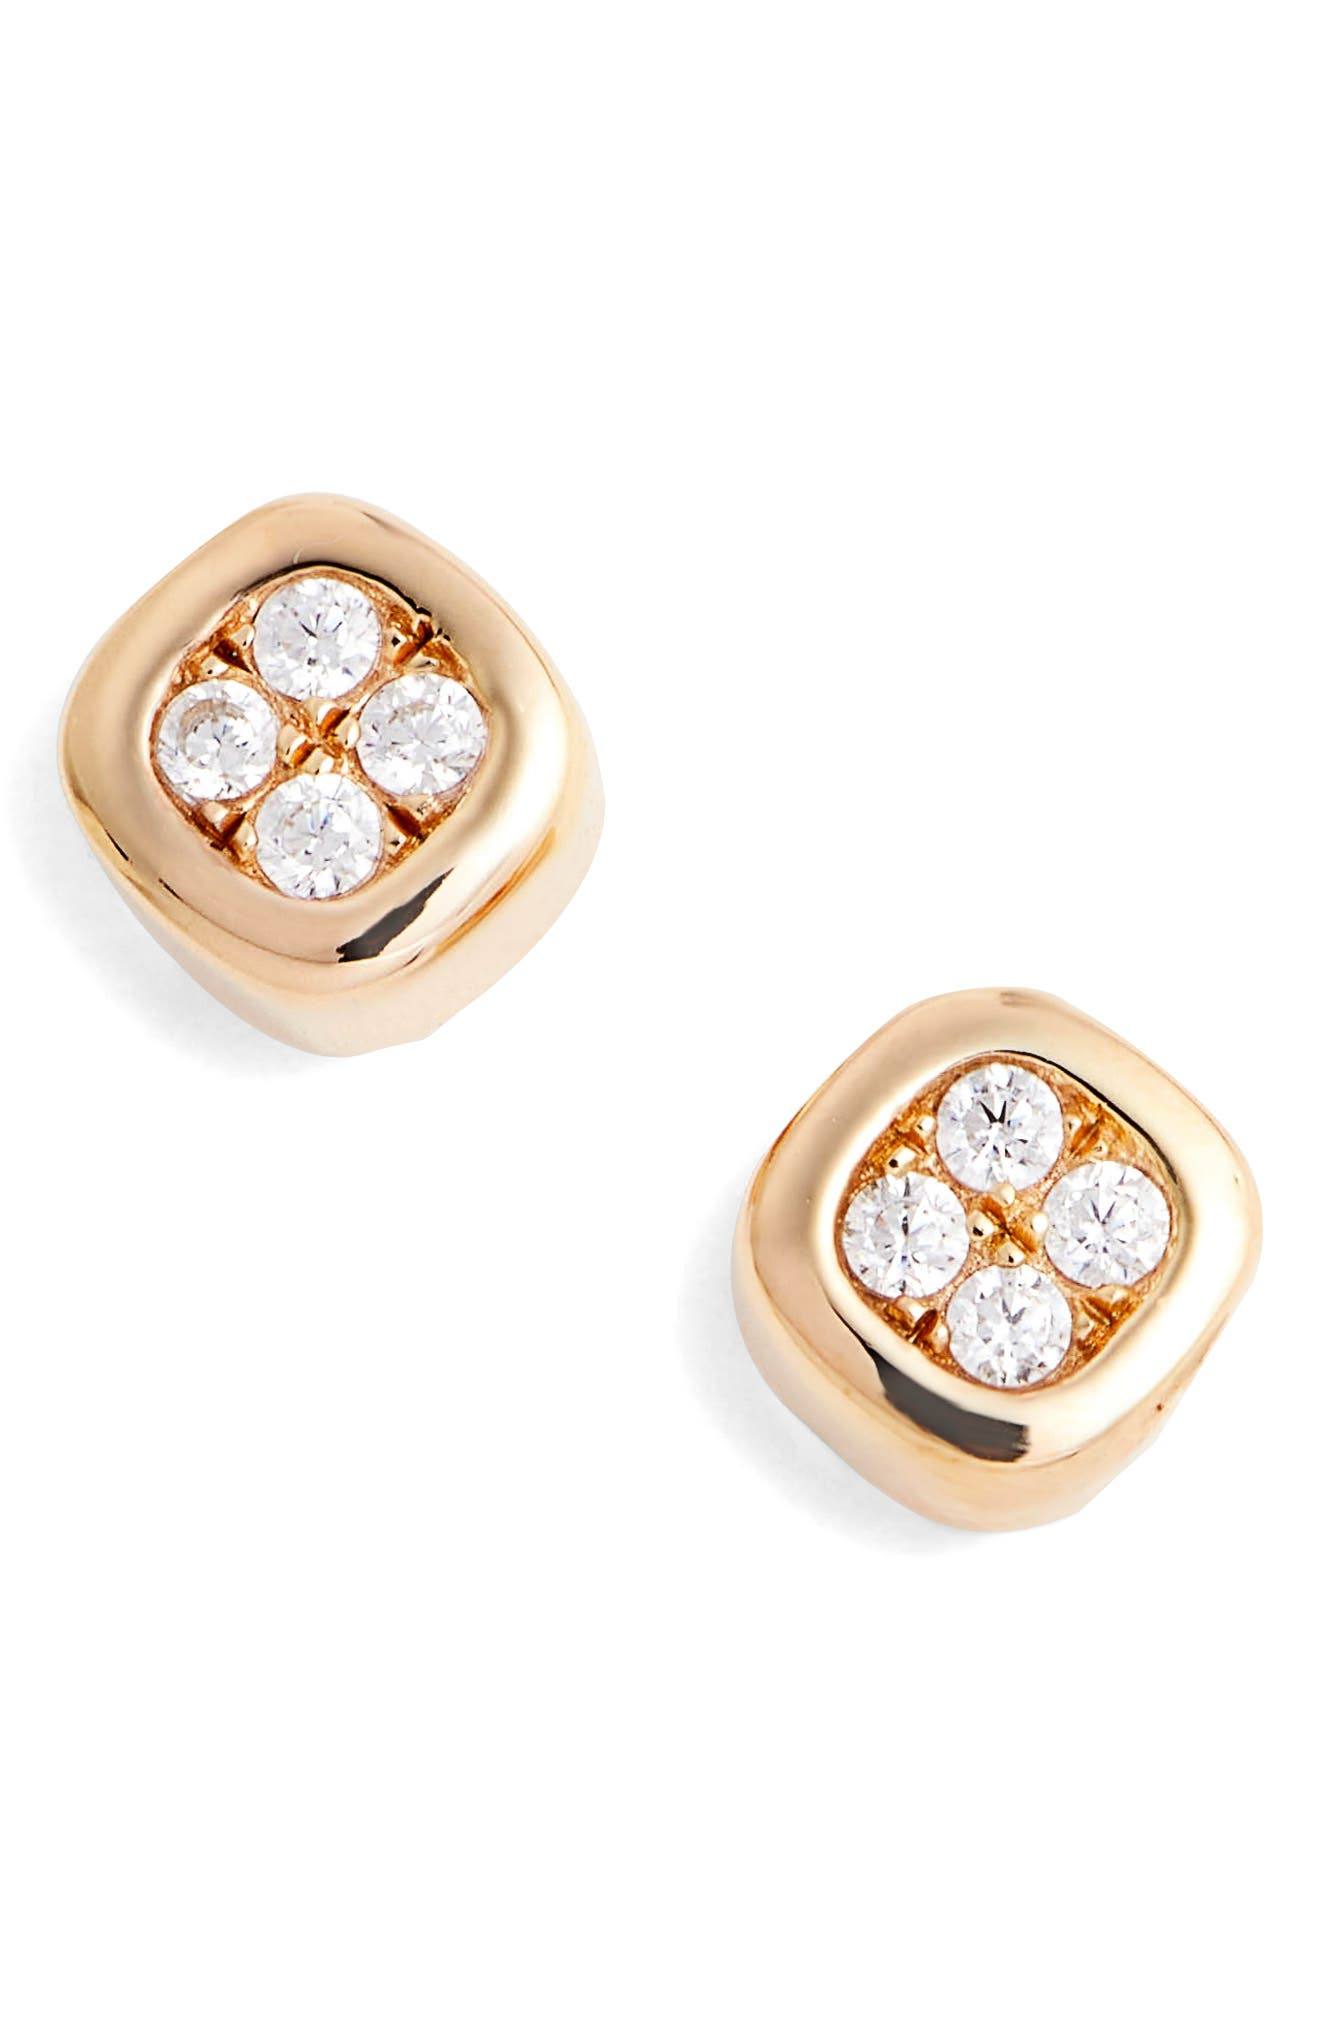 Foursquare Simulated Diamond Earrings,                             Main thumbnail 1, color,                             Silver/ Gold/ Clear